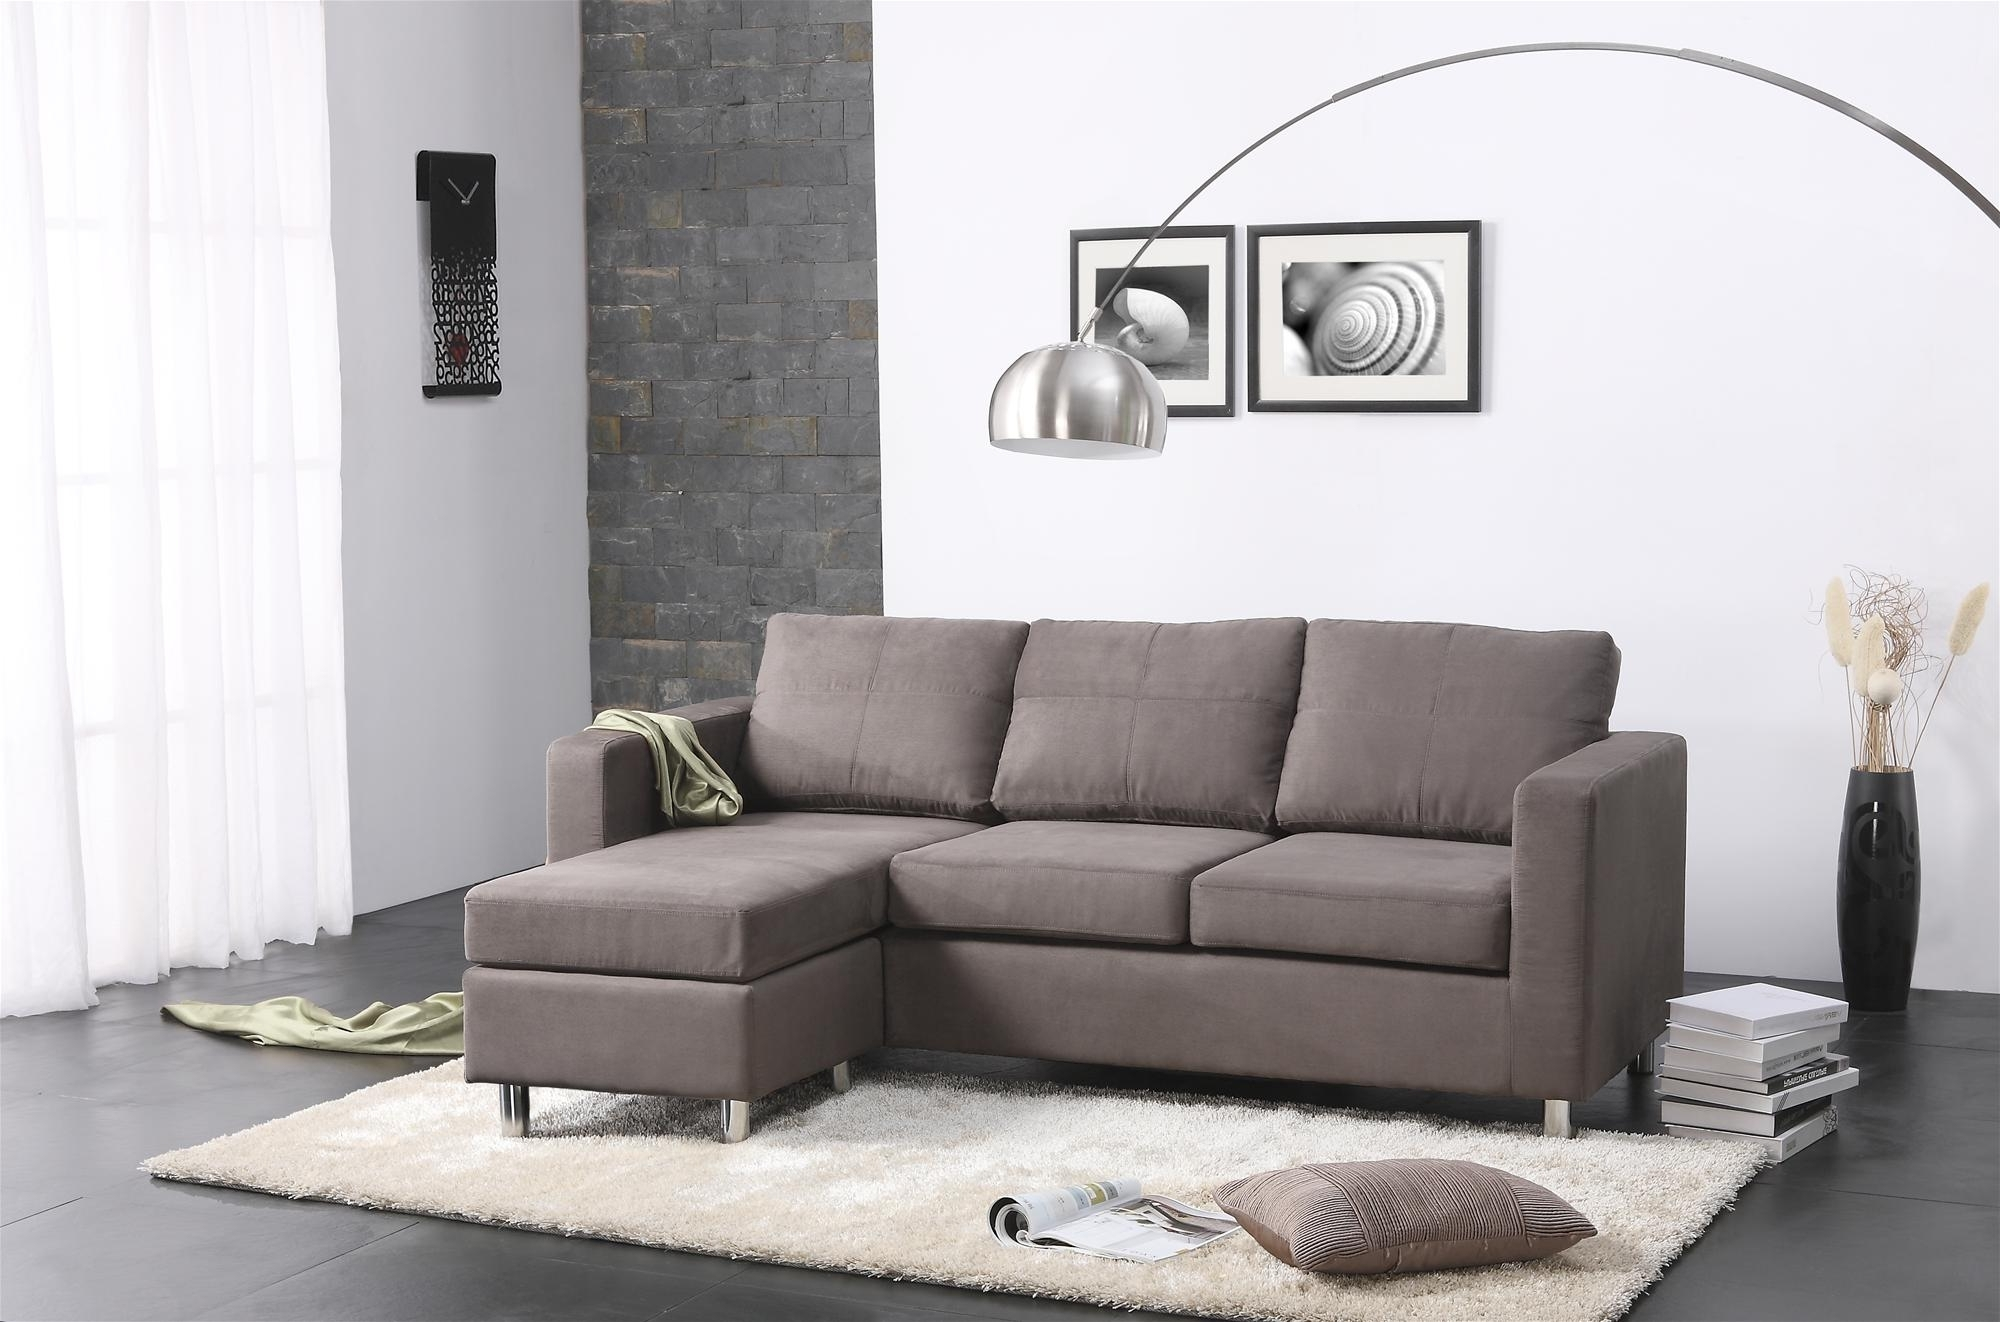 Fashionable Fancy Sectional Sofa For Small Spaces 46 For Contemporary Sofa Intended For Sectional Sofas In Small Spaces (View 3 of 20)